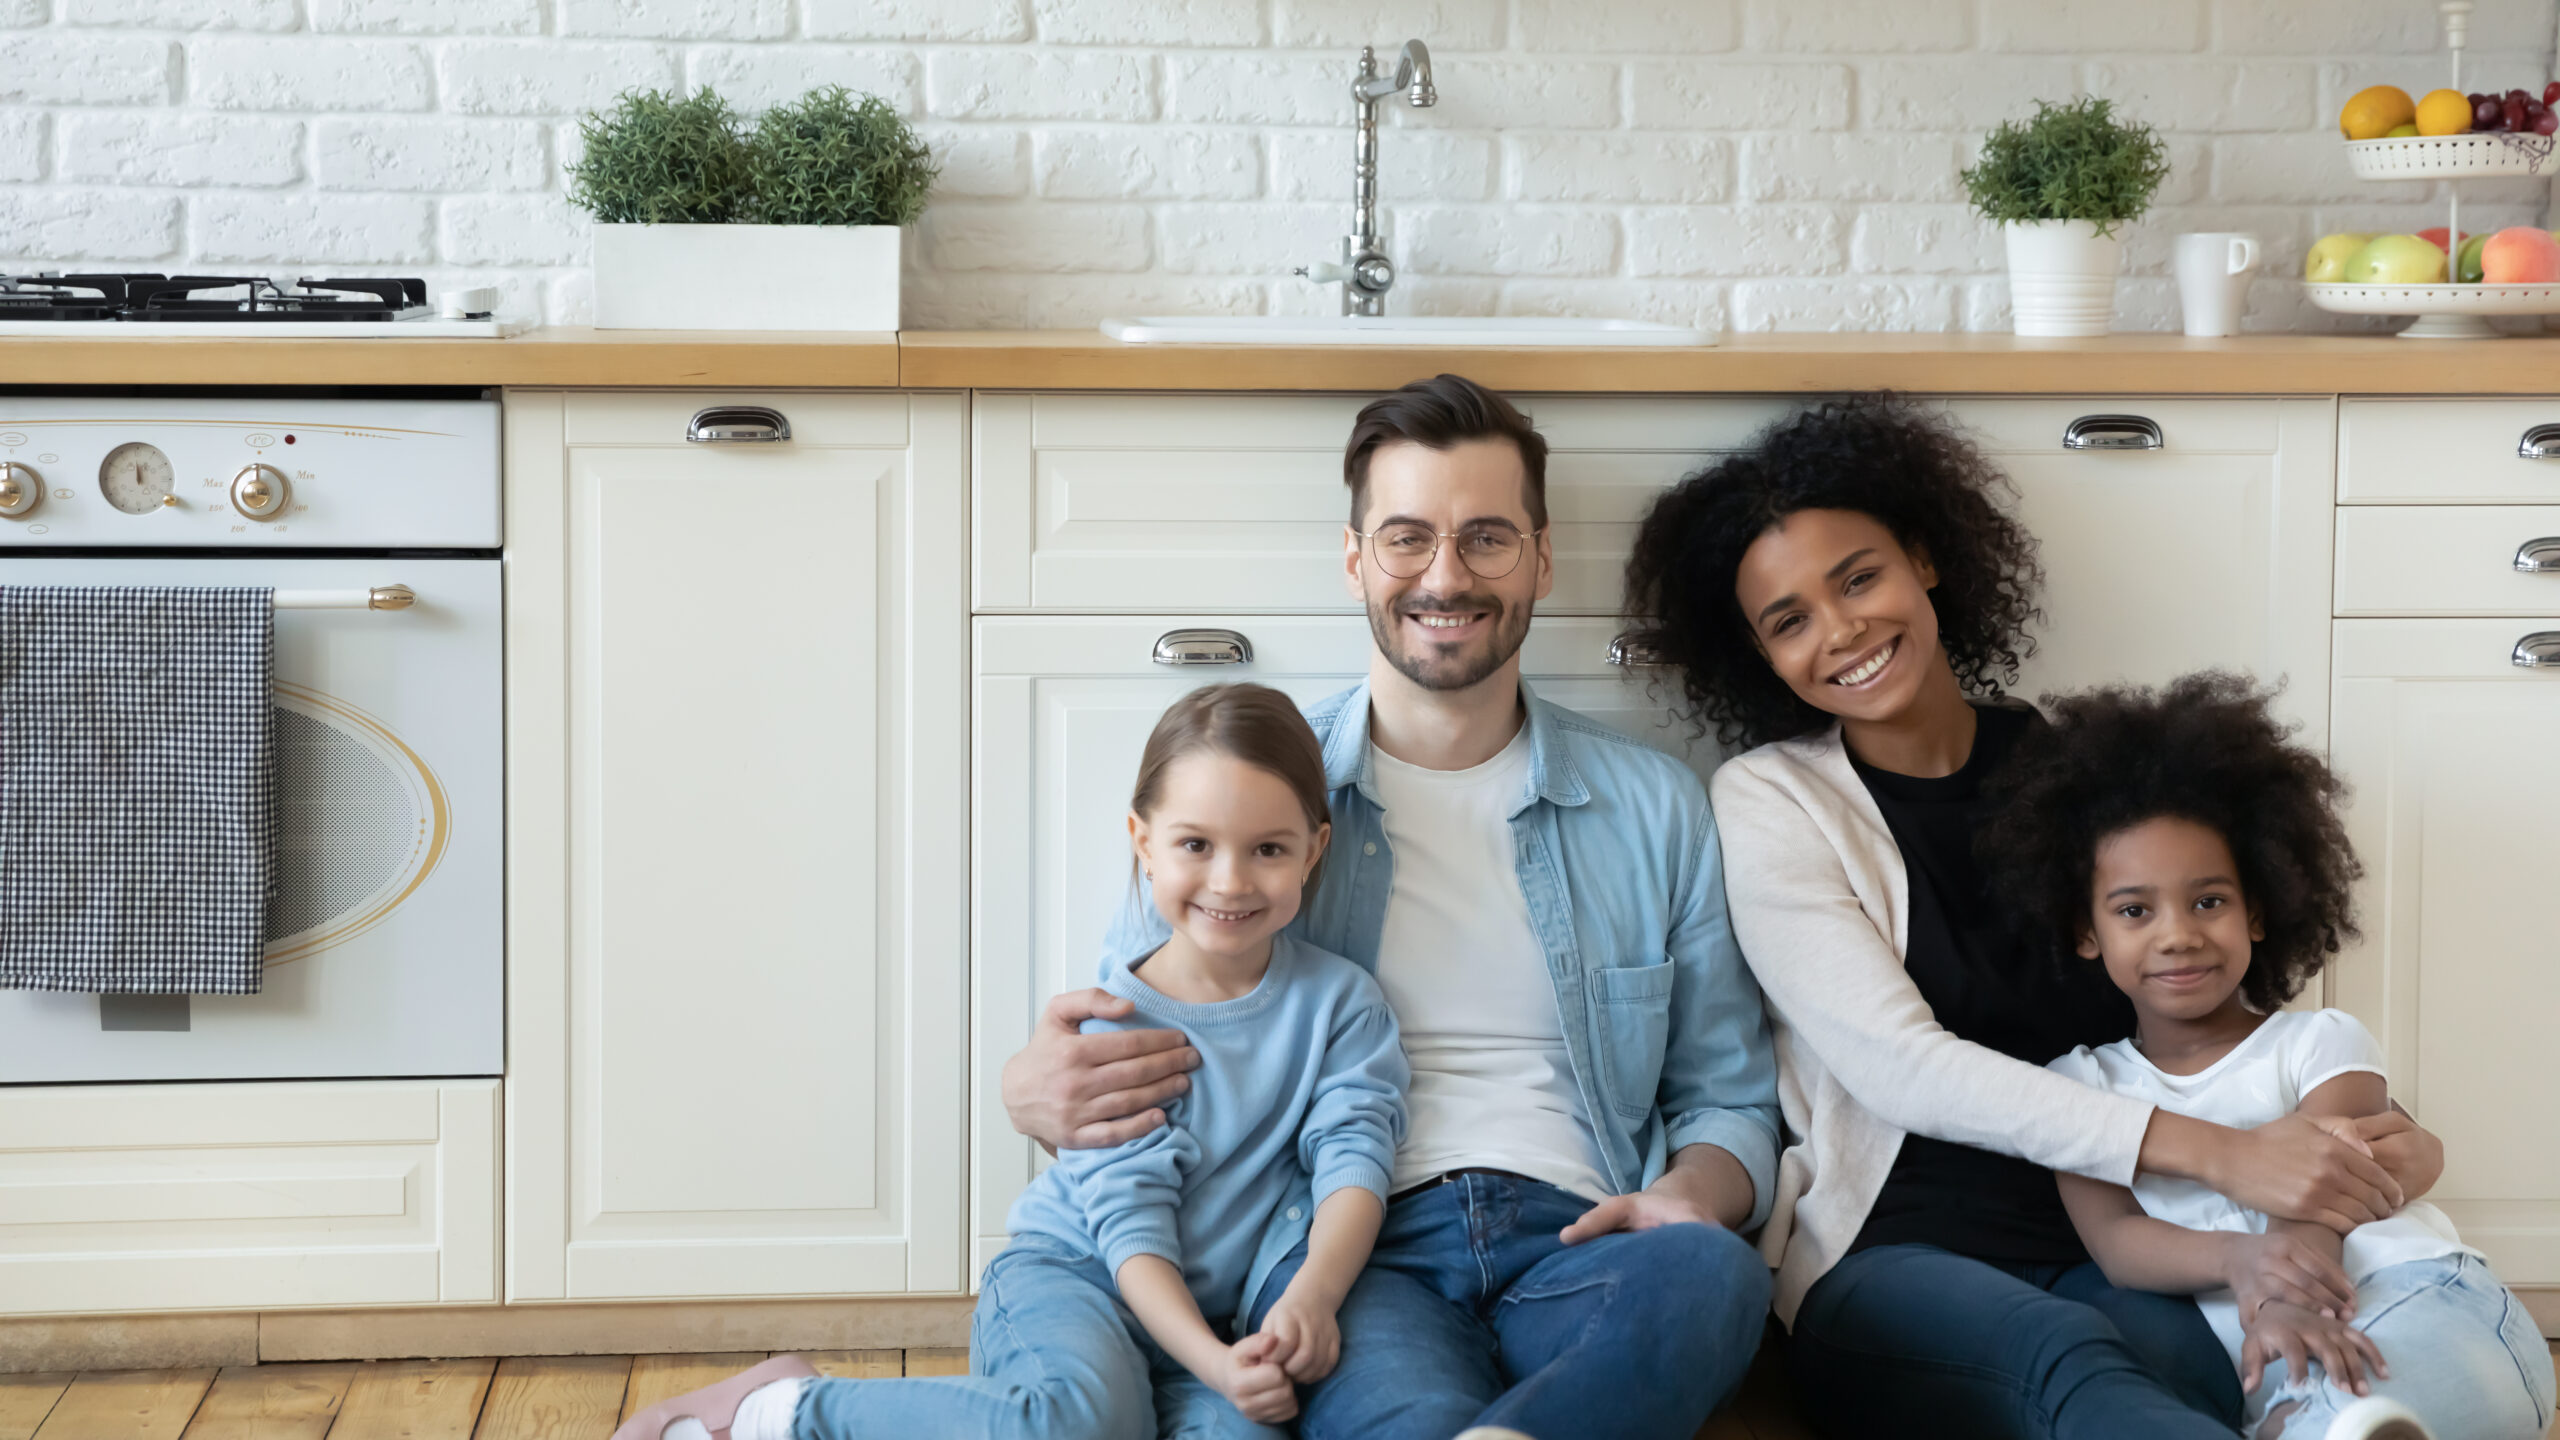 5 Ways to Increase Family Happiness